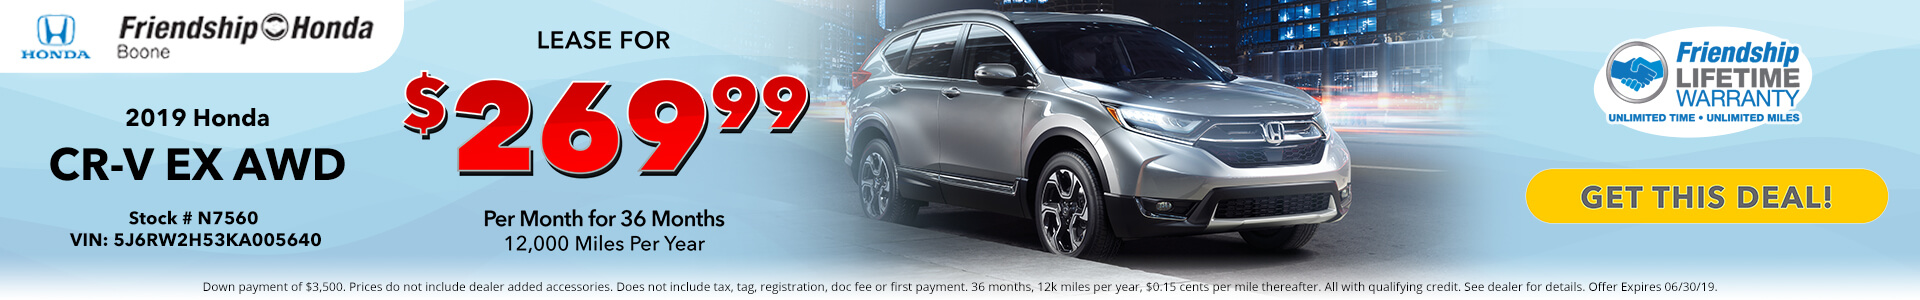 Honda CR-V EX $269.99 Lease